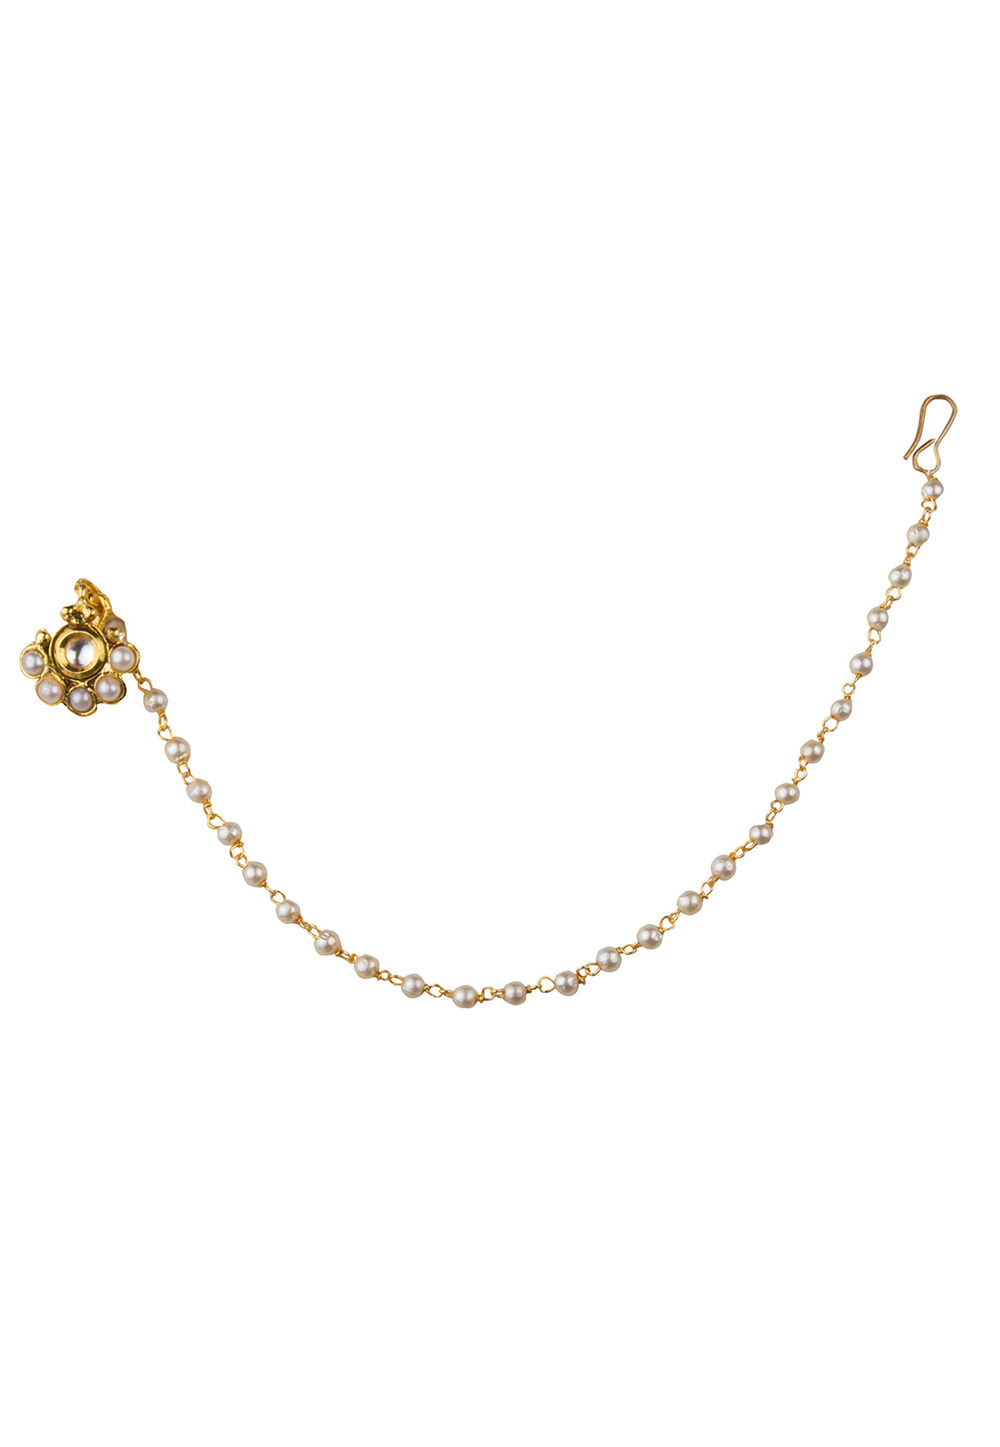 Golden Alloy Nose Ring With Chain 179724